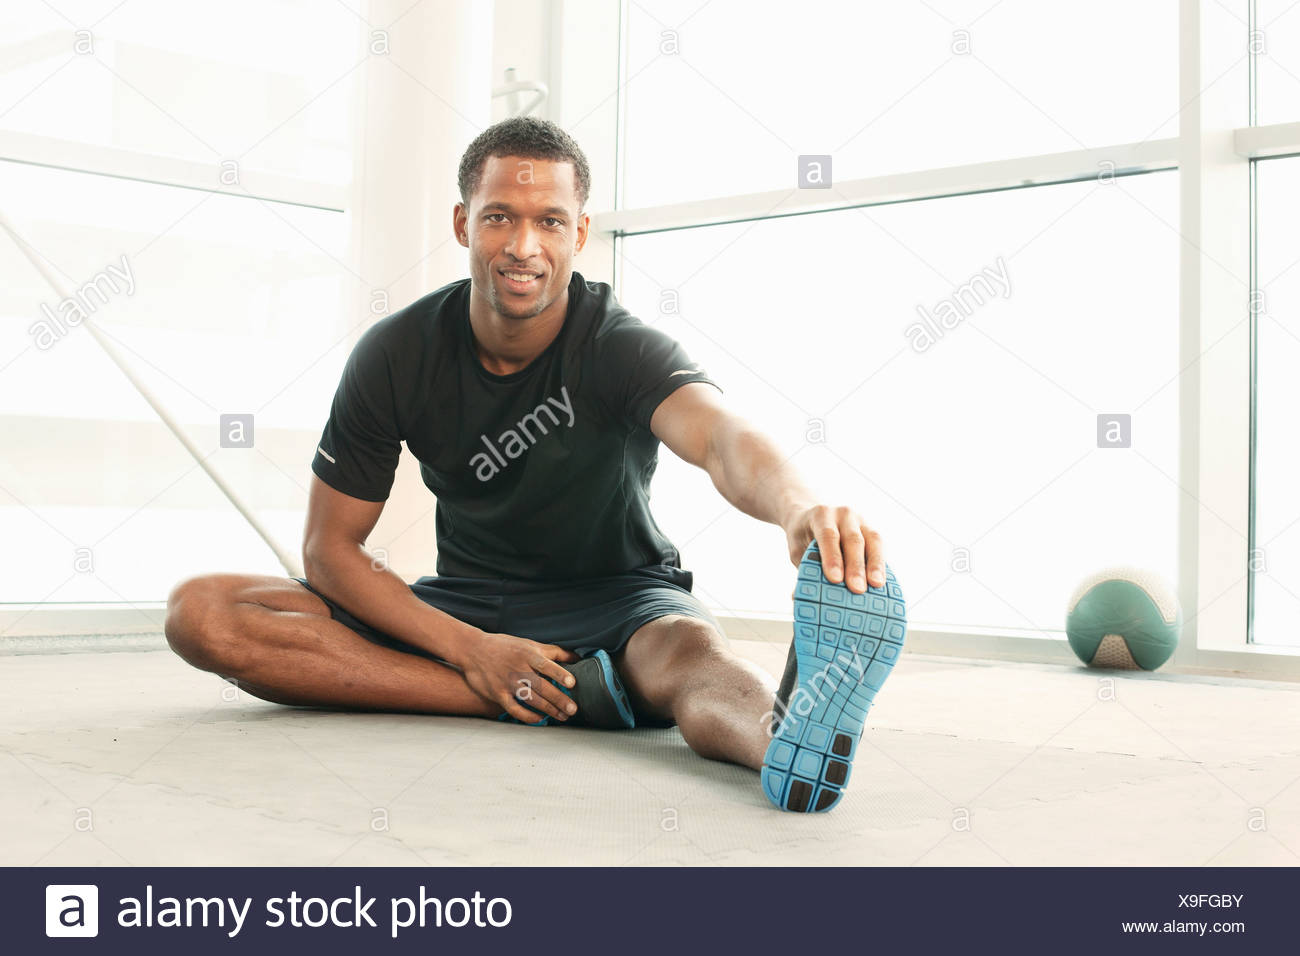 Man sitting touching toes stretching - Stock Image